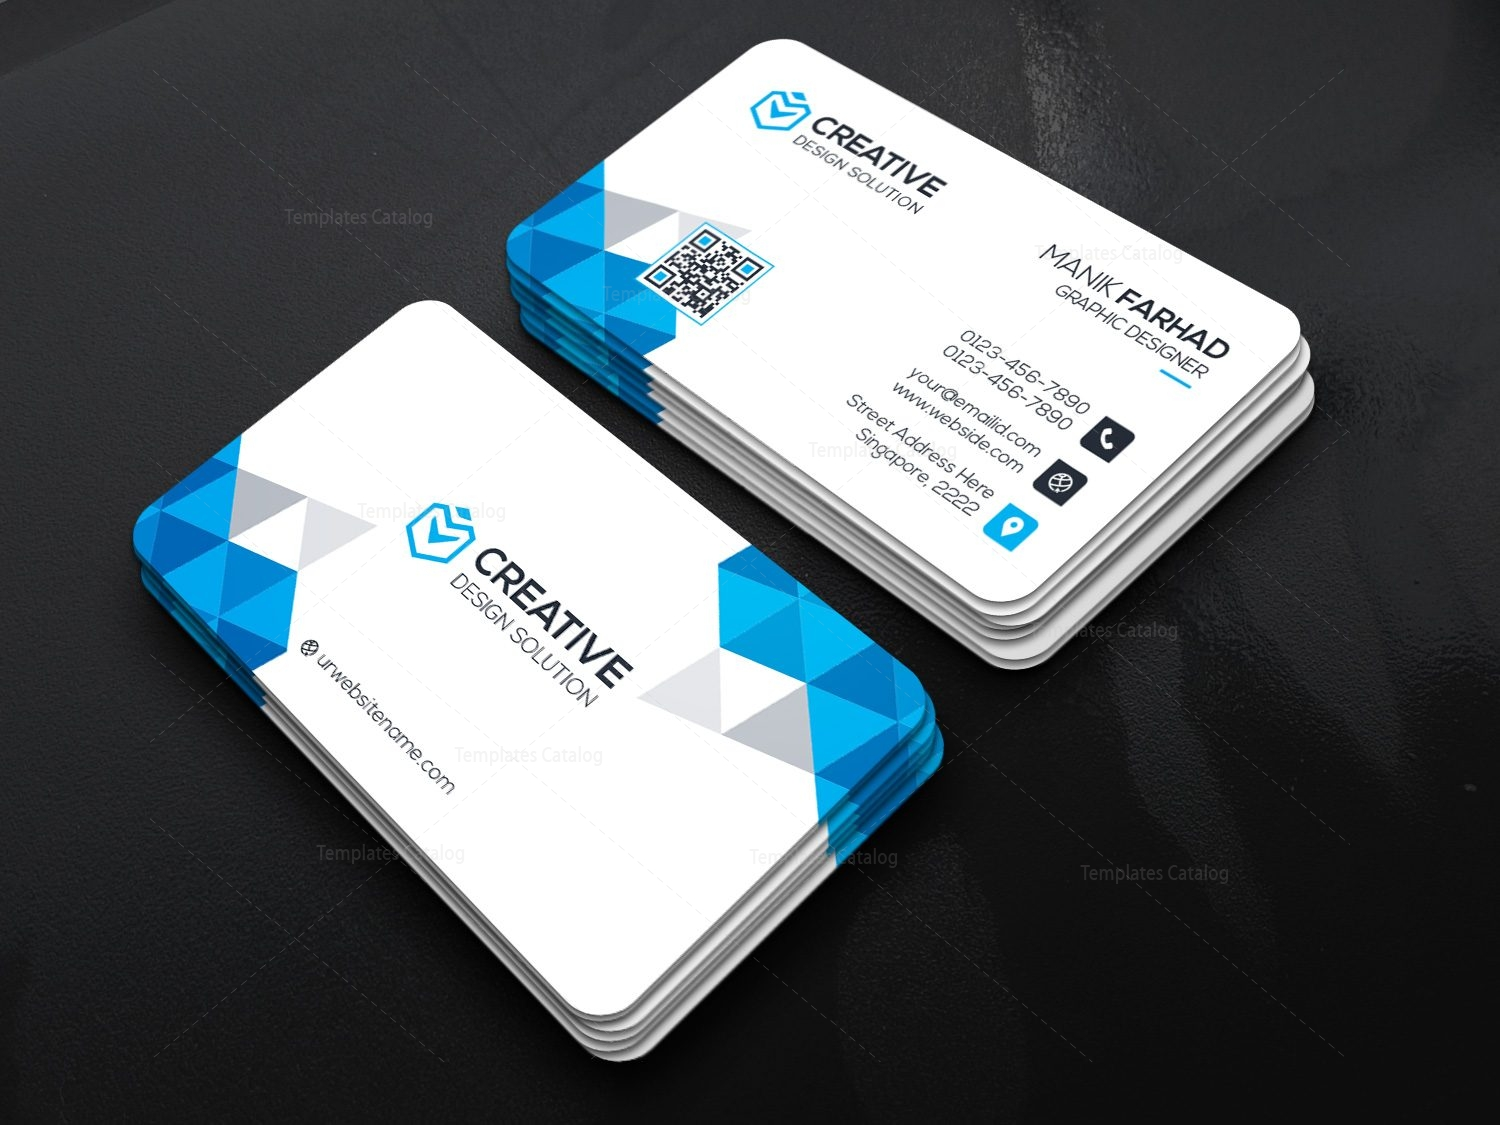 Unique Business Cards Shapes Model Business Card Ideas Etadam Info